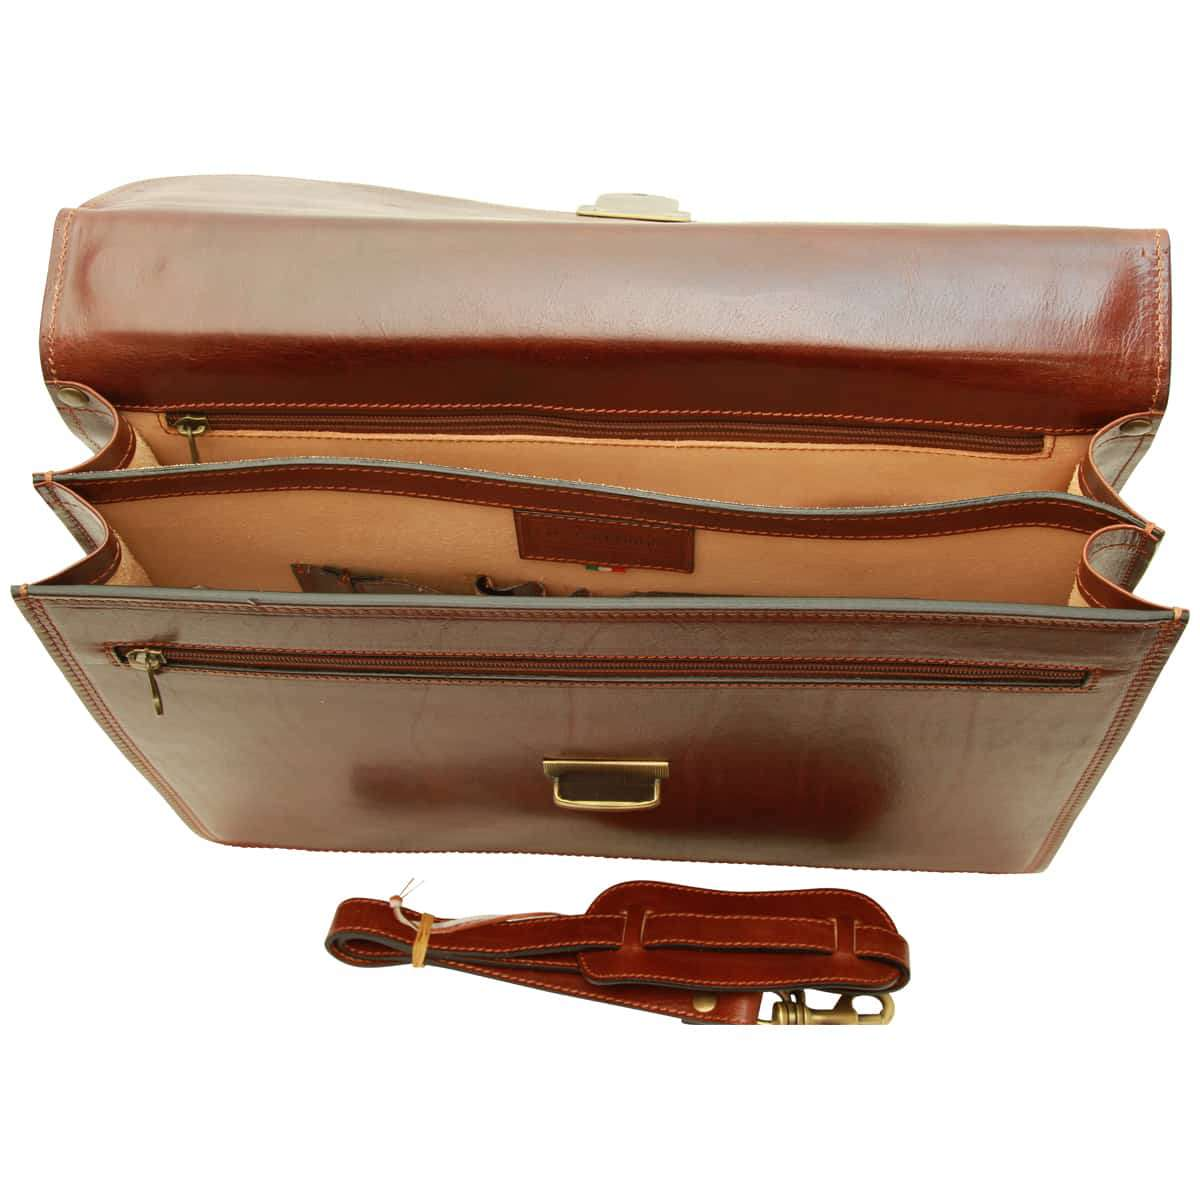 Vachetta Leather Briefcase - Brown | 200105MA UK | Old Angler Firenze